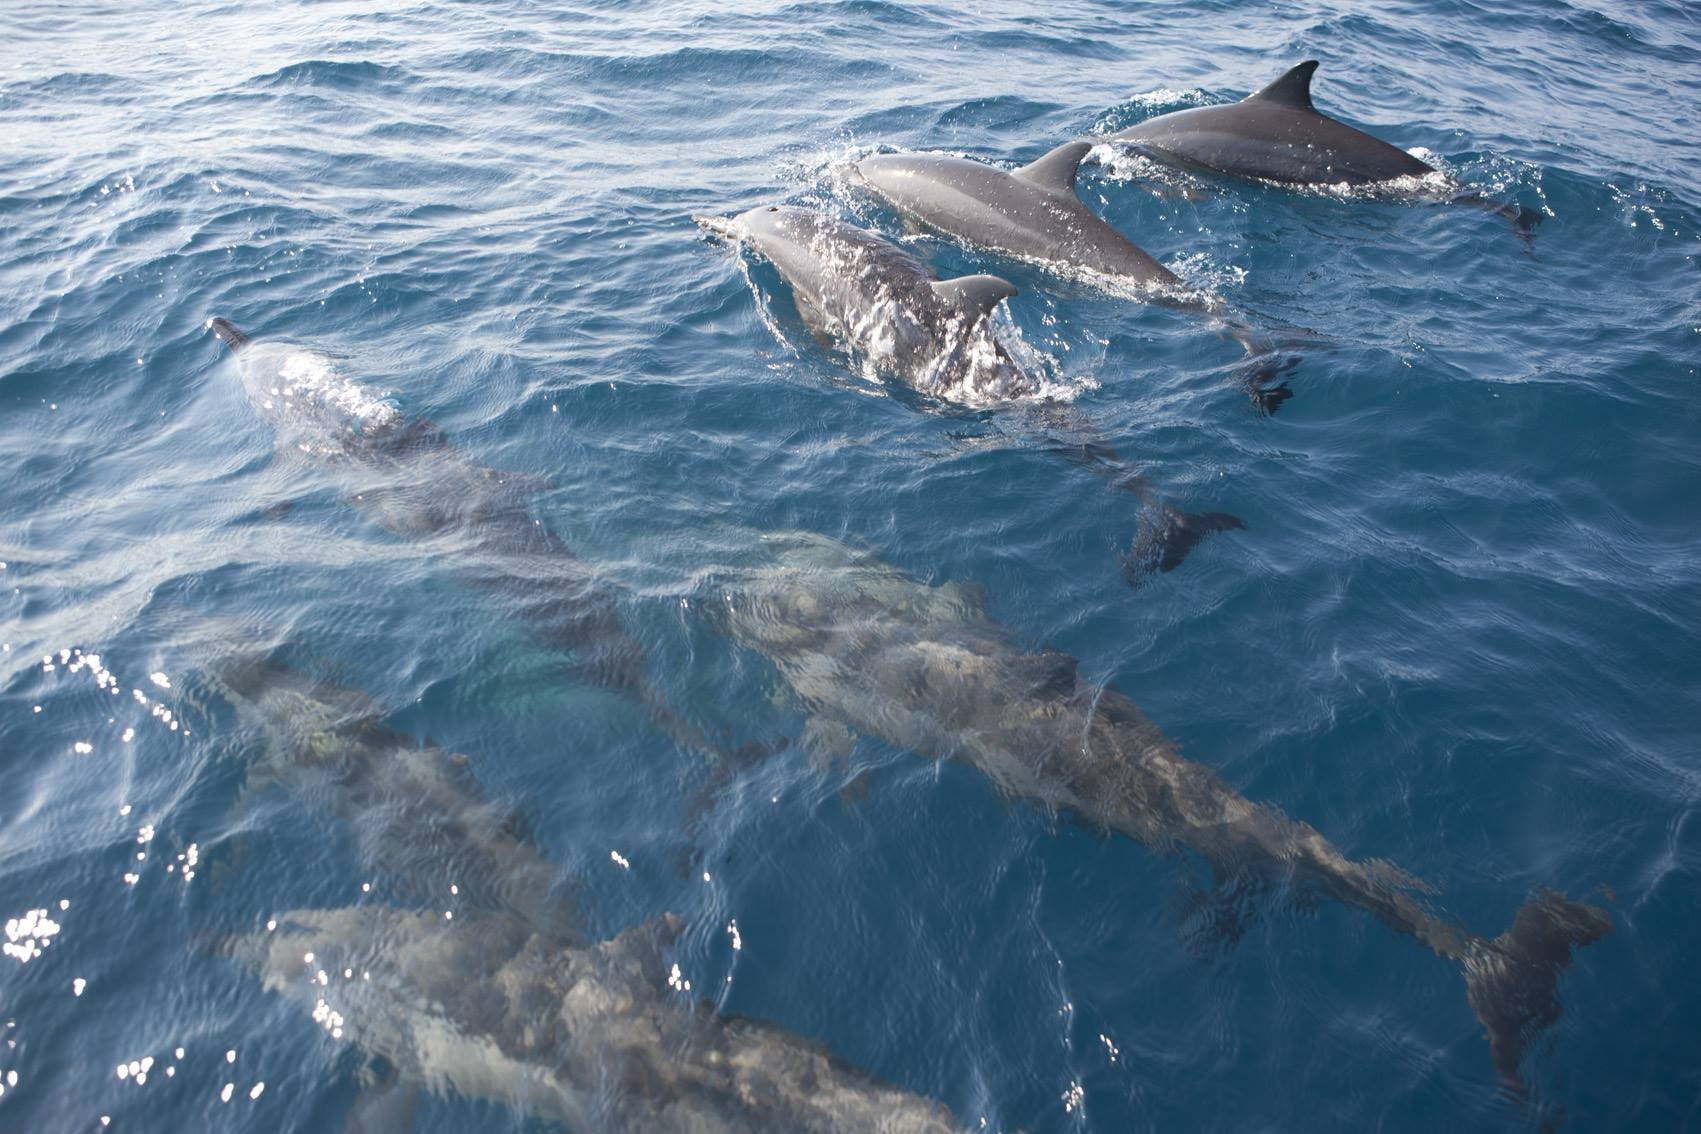 south africans save stranded dolphins disoriented by cyclone dineo - sapeople